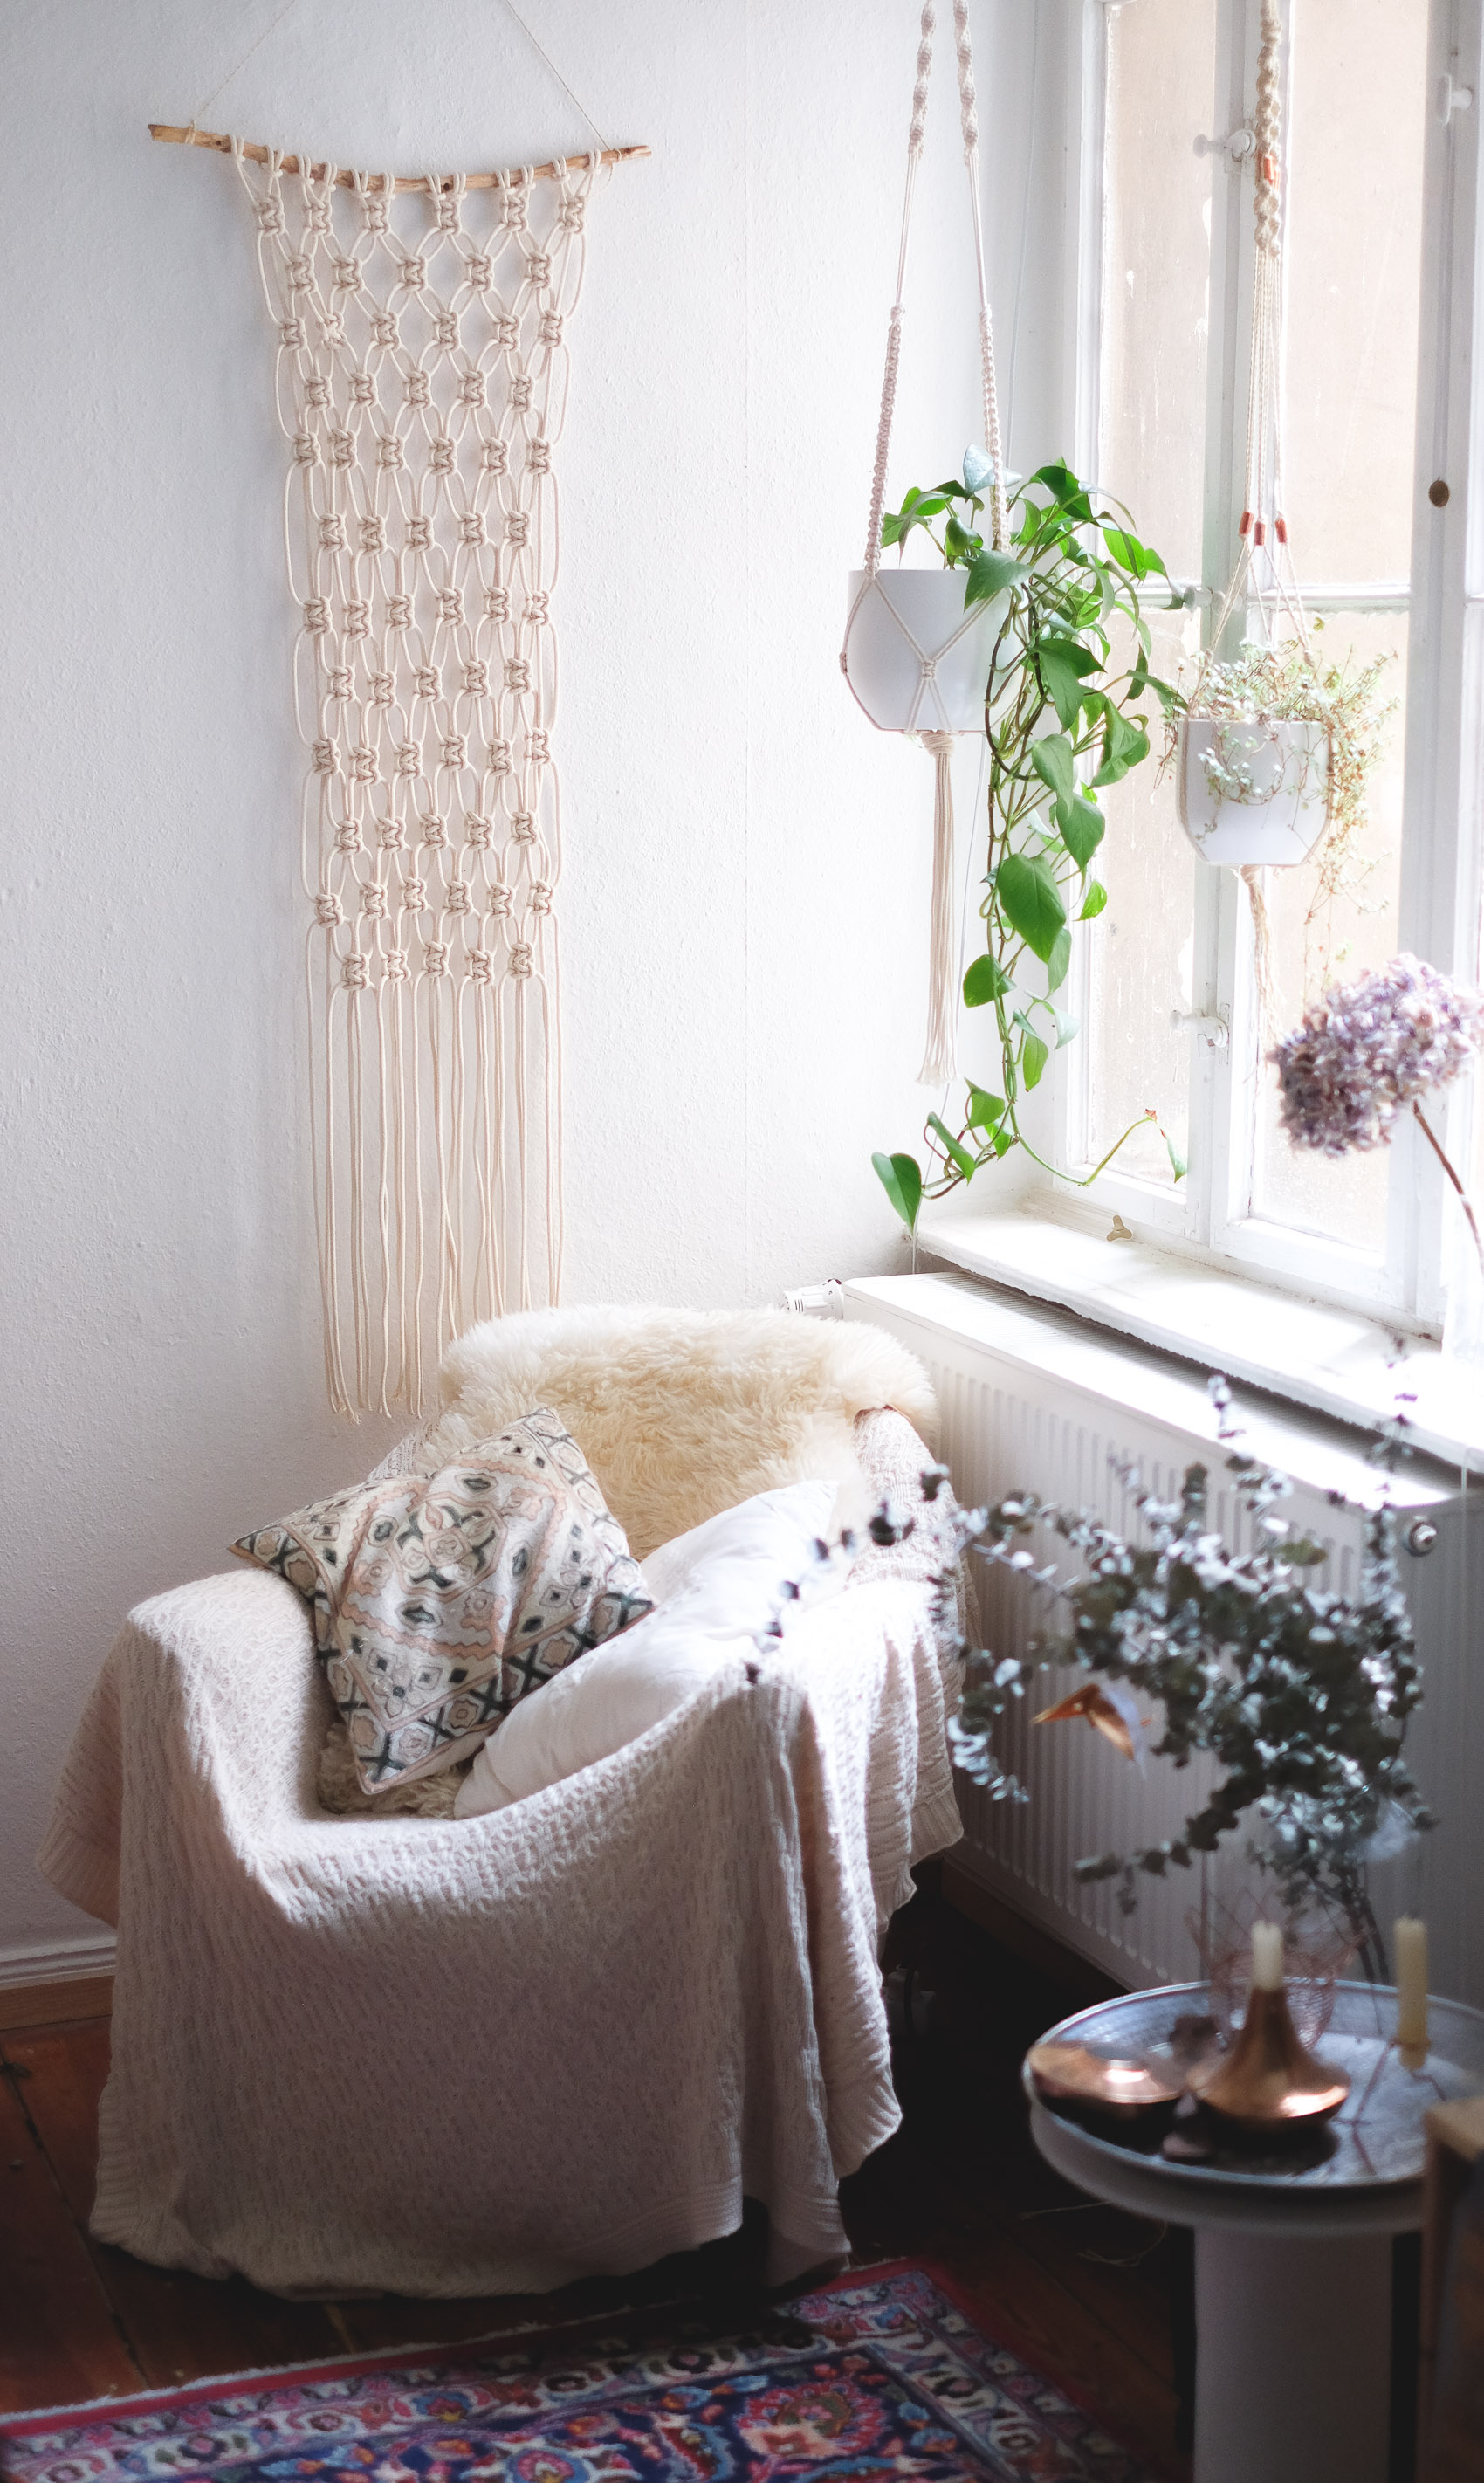 Interior Super Easy Diy Macrame Wall Hanging Tutorial